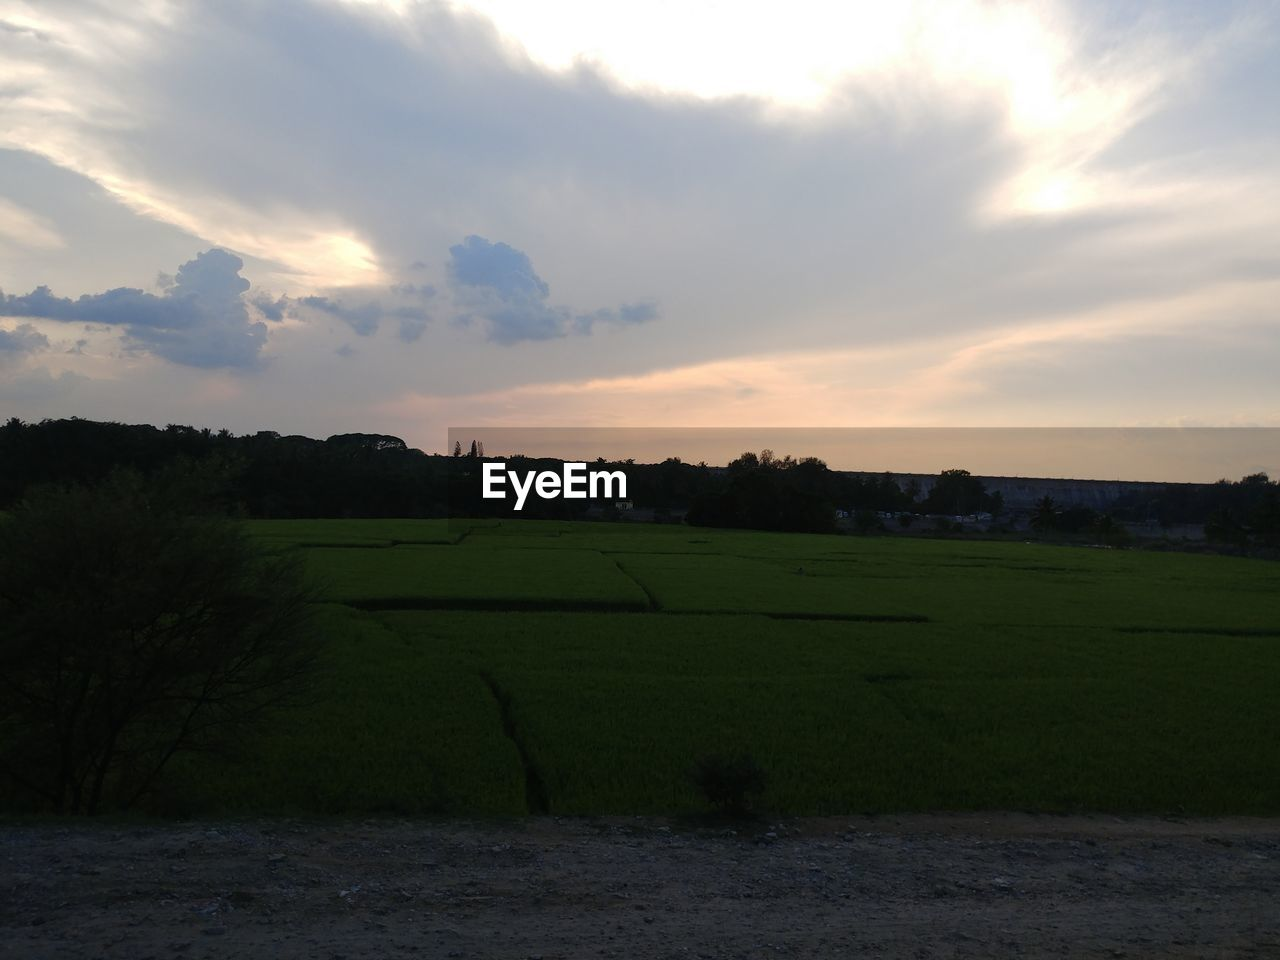 sky, cloud - sky, beauty in nature, environment, landscape, scenics - nature, sunset, tranquil scene, plant, tranquility, green color, field, land, nature, no people, grass, tree, agriculture, rural scene, outdoors